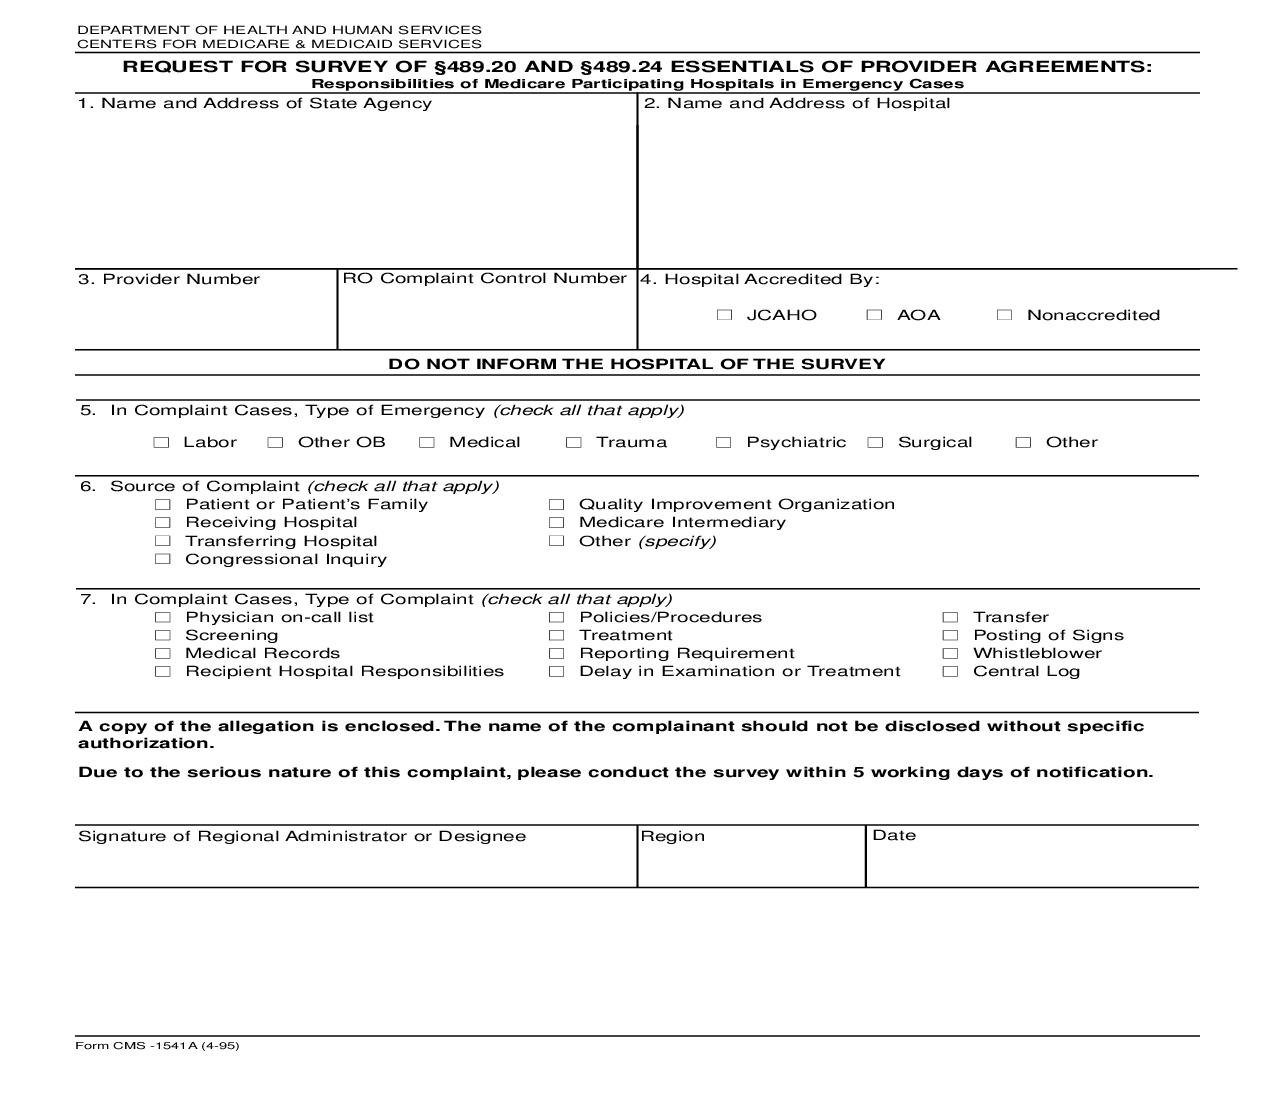 Request For Survey Of 489.20 And 489.24 Essentials Of Provider Agreements {CMS-1541A}   Pdf Fpdf Doc Docx   Official Federal Forms